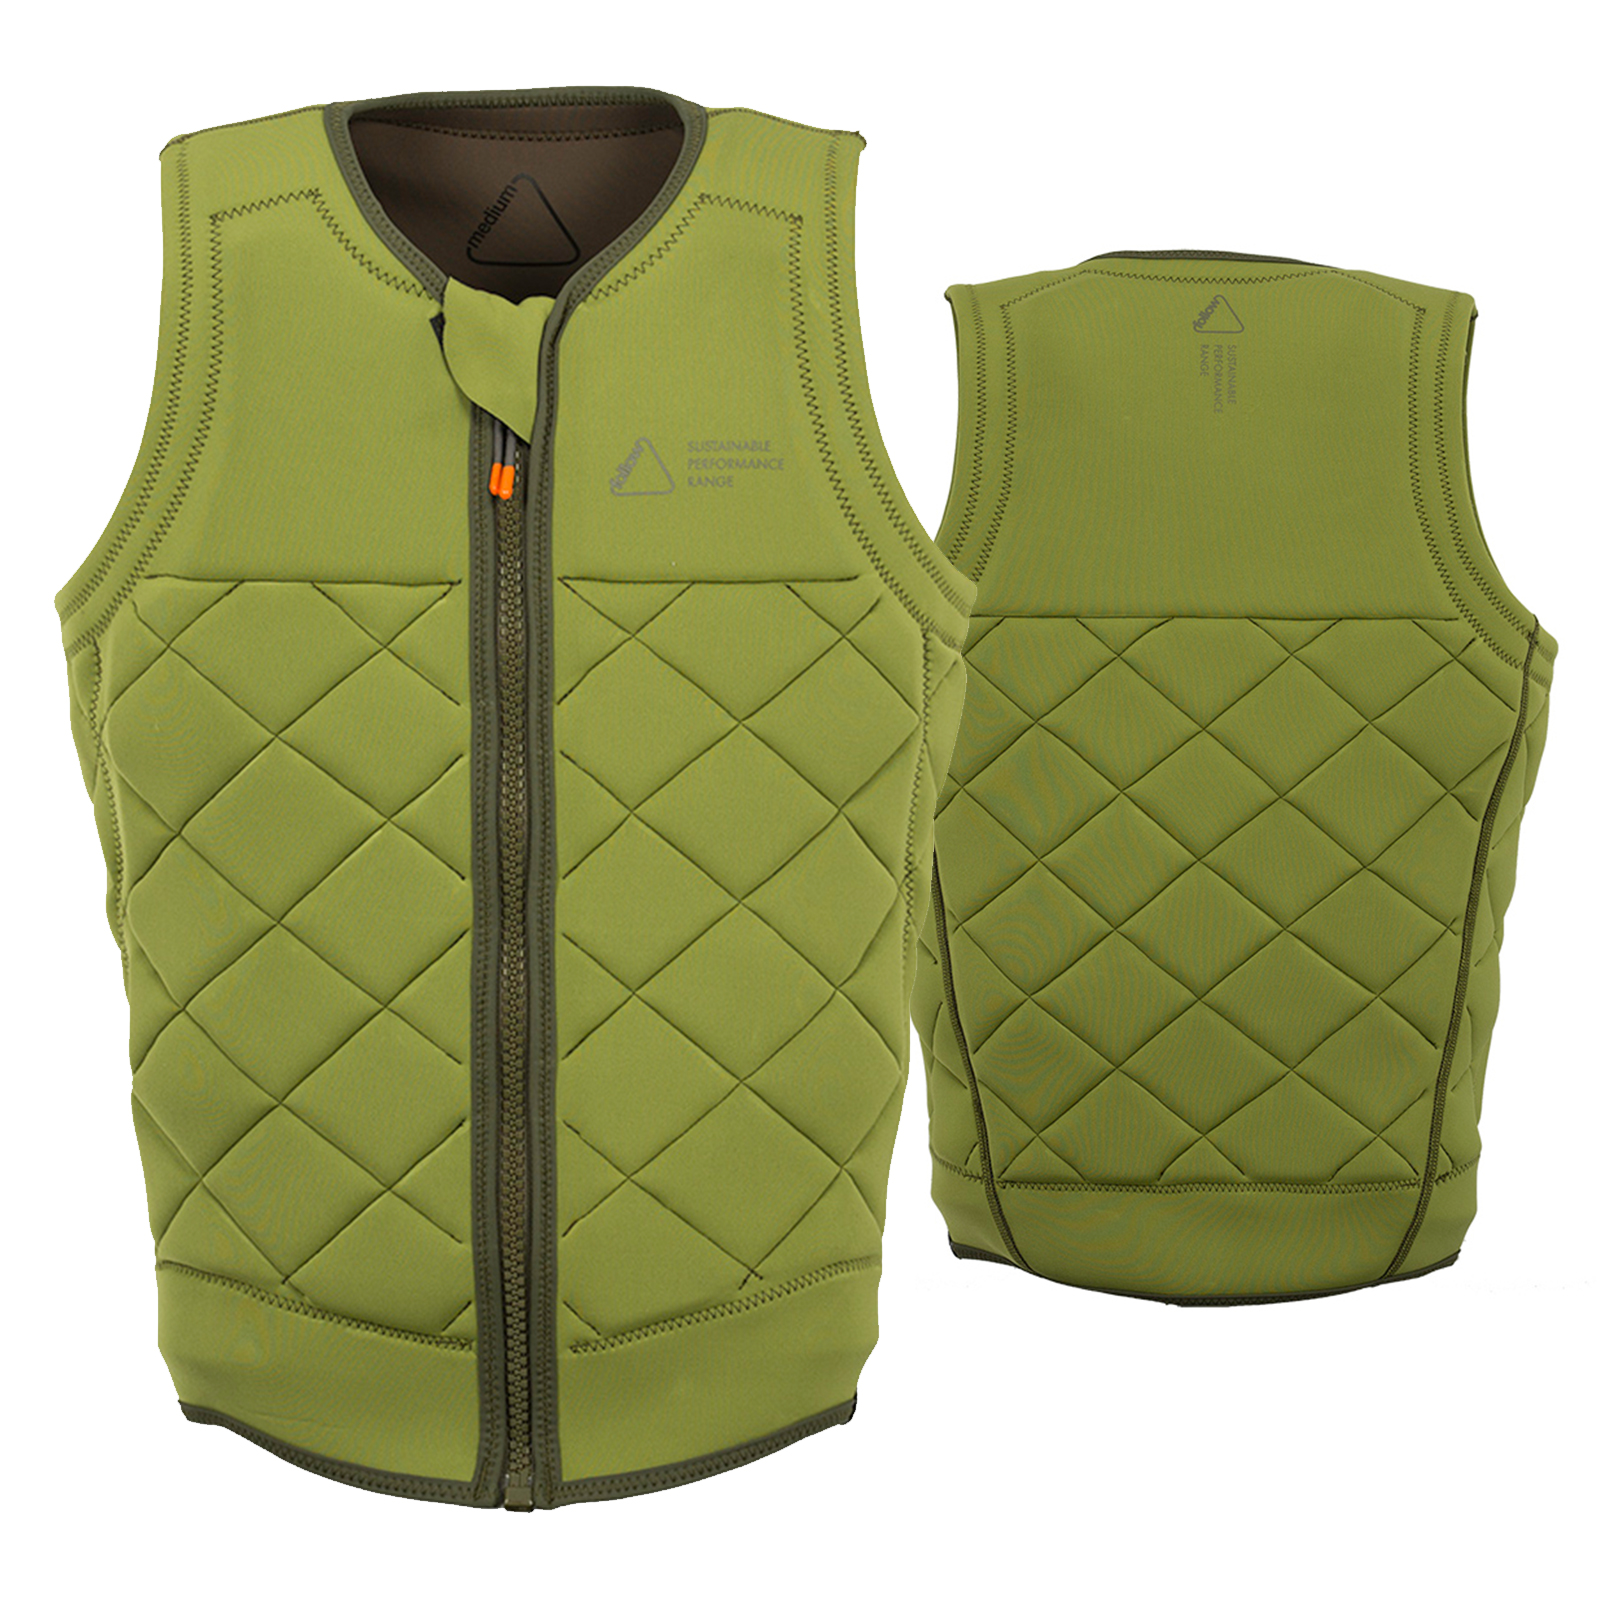 S.P.R MEN'S IMPACT VEST REED FOLLOW 2018